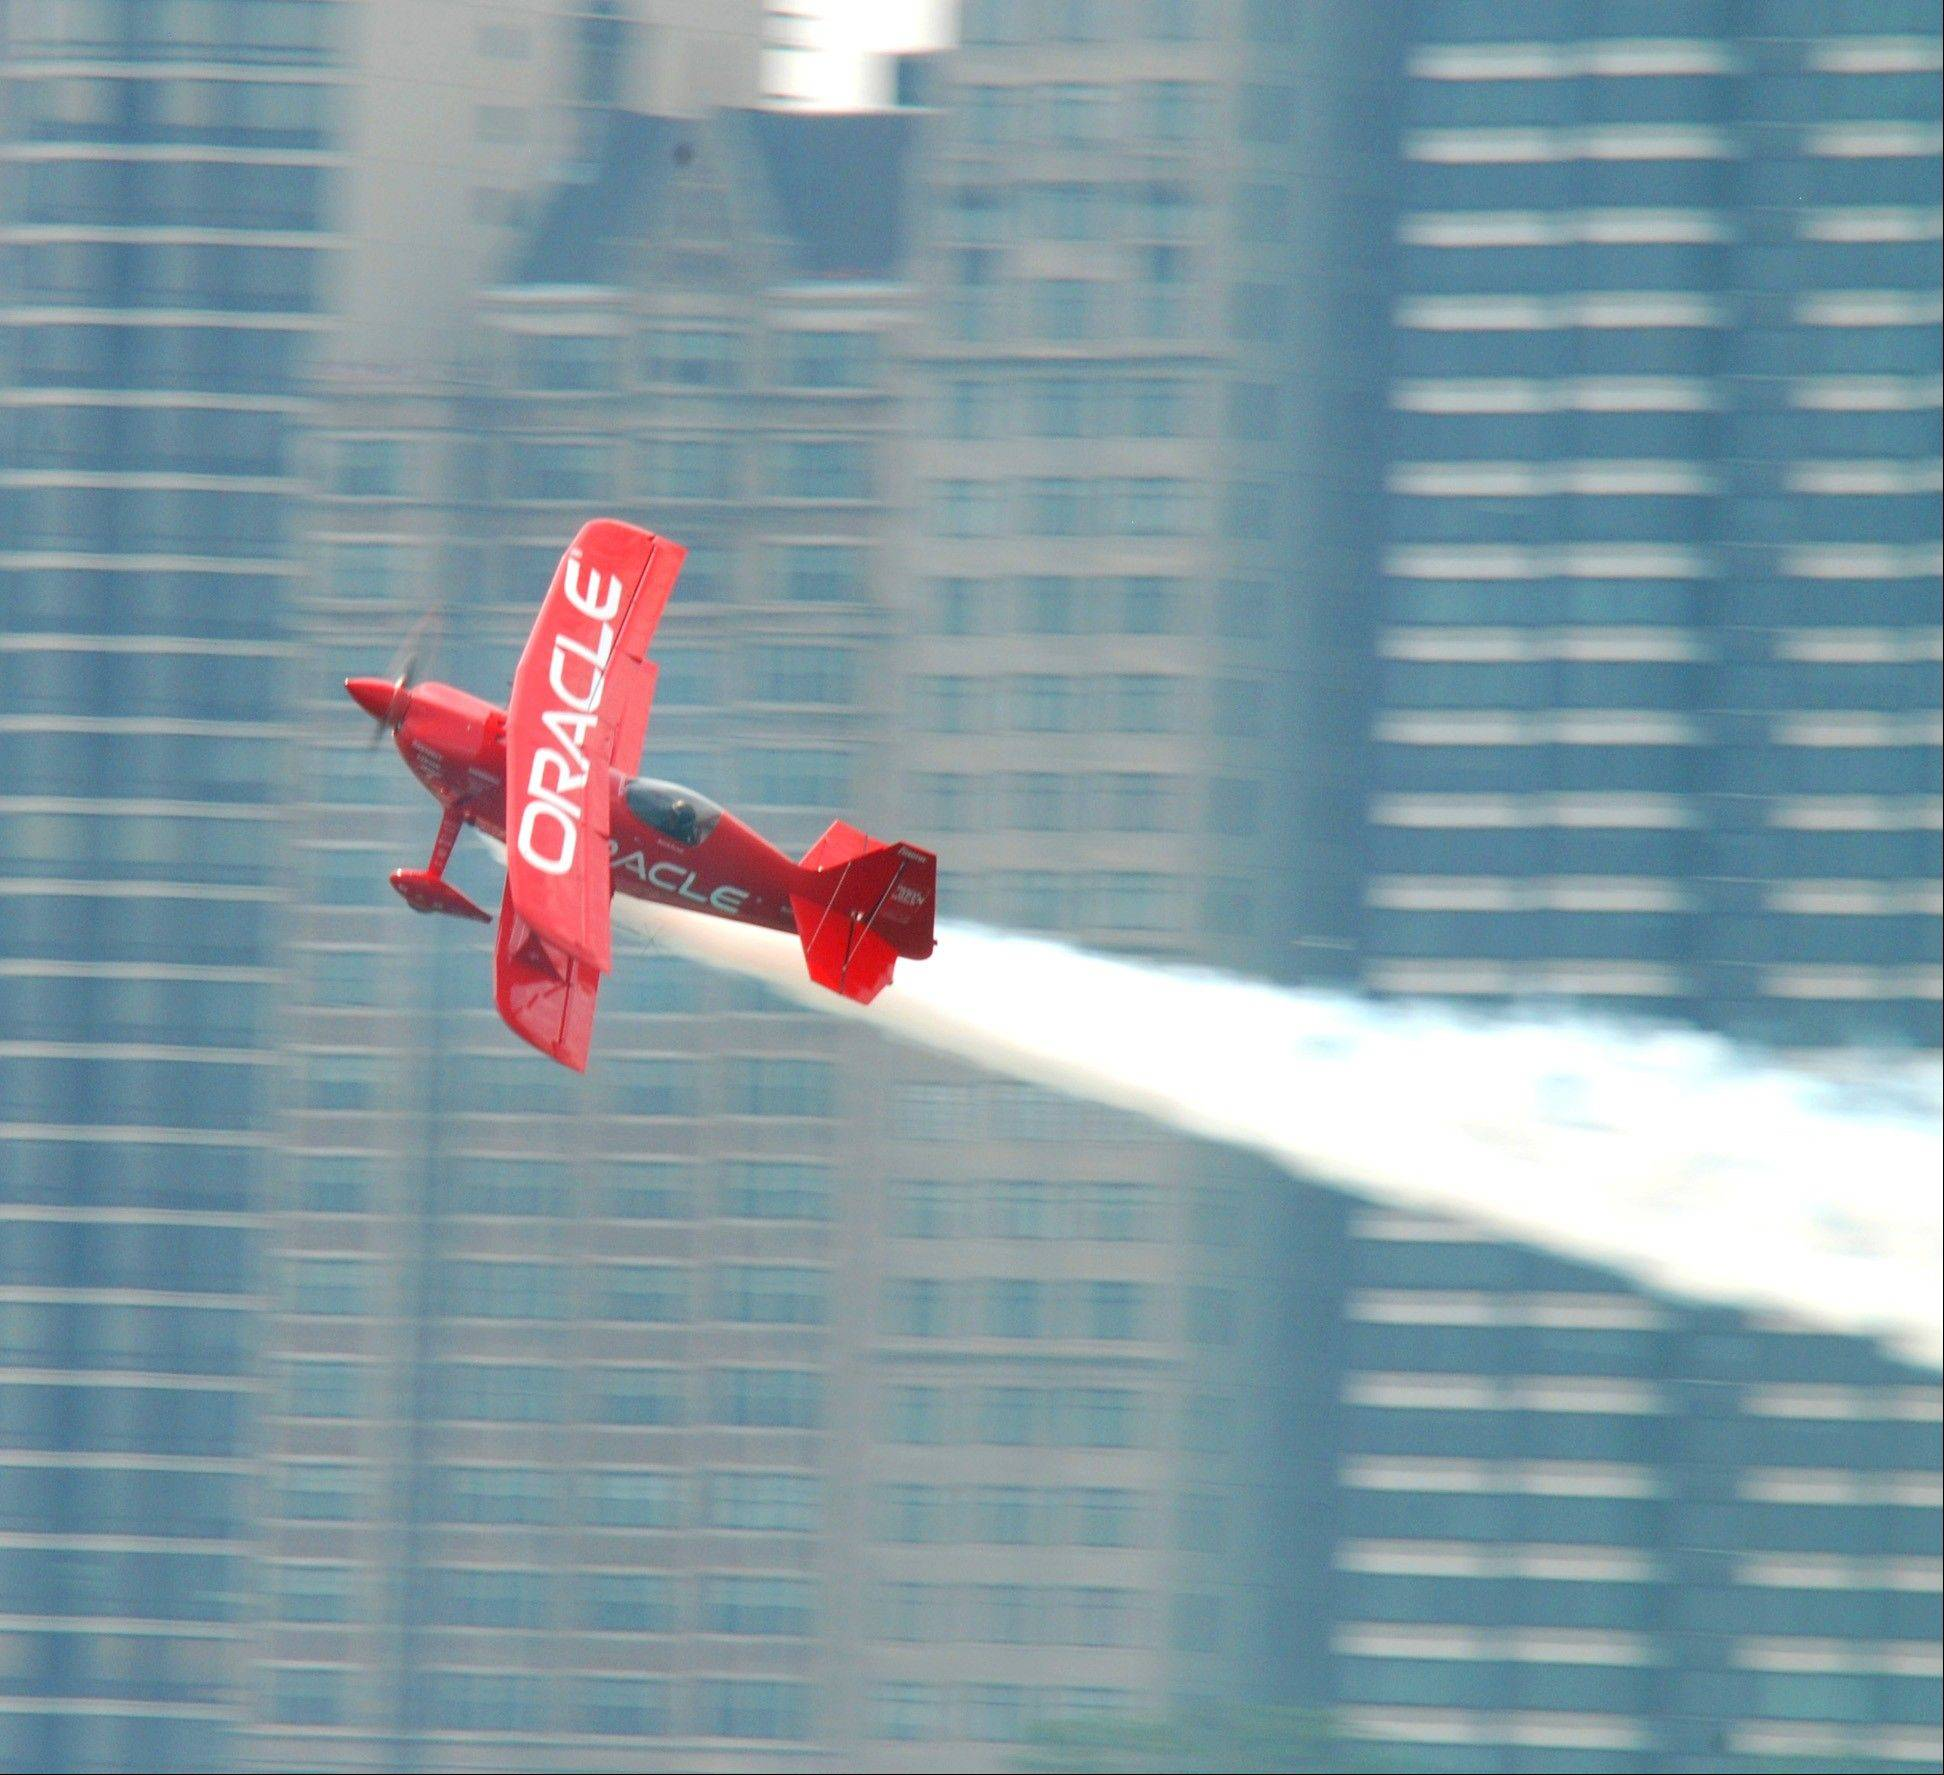 Sean D. Tucker and Team Oracle will fly in the 55th annual Chicago Air & Water Show.